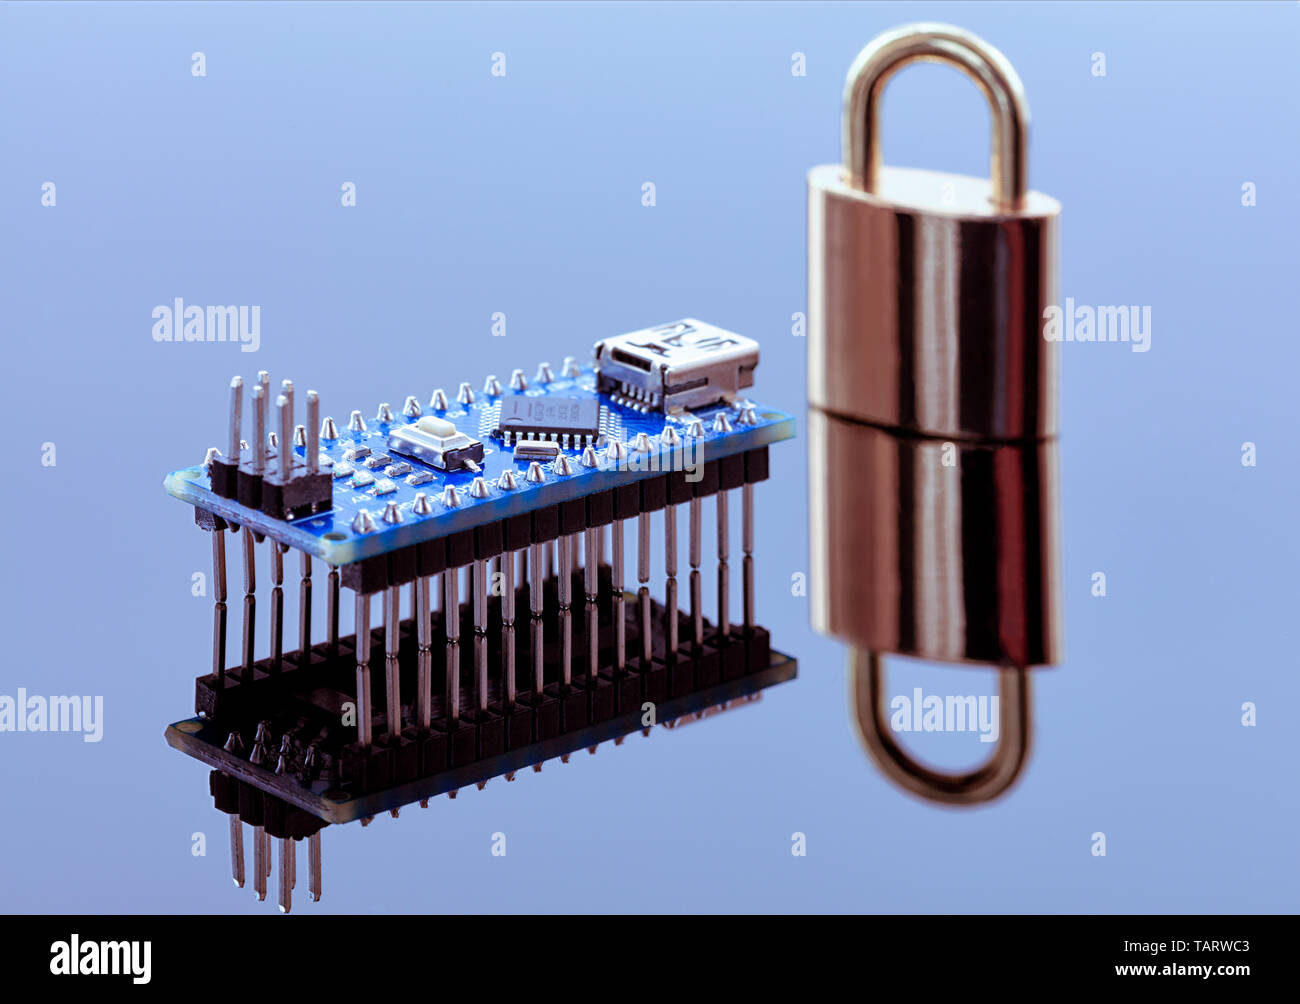 The lock near the computer chip is data encryption, the concept of coding technology of operational information and the protection of personal data. - Stock Image